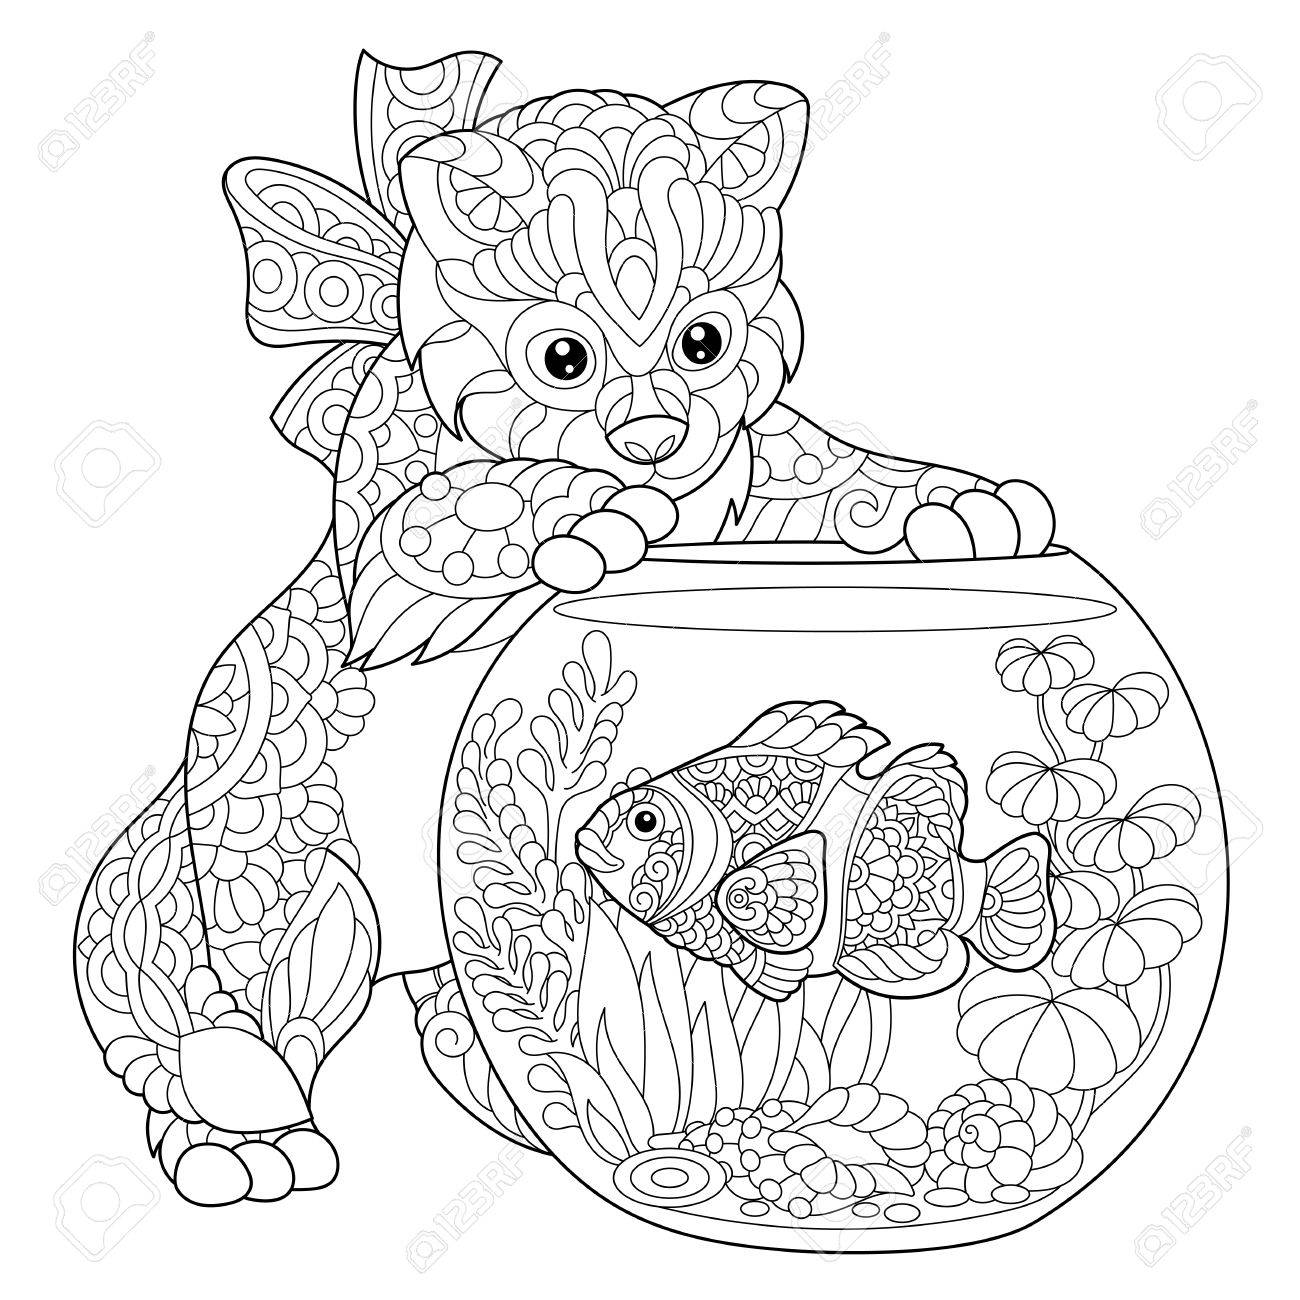 The Best Free Aquarium Drawing Images Download From 194